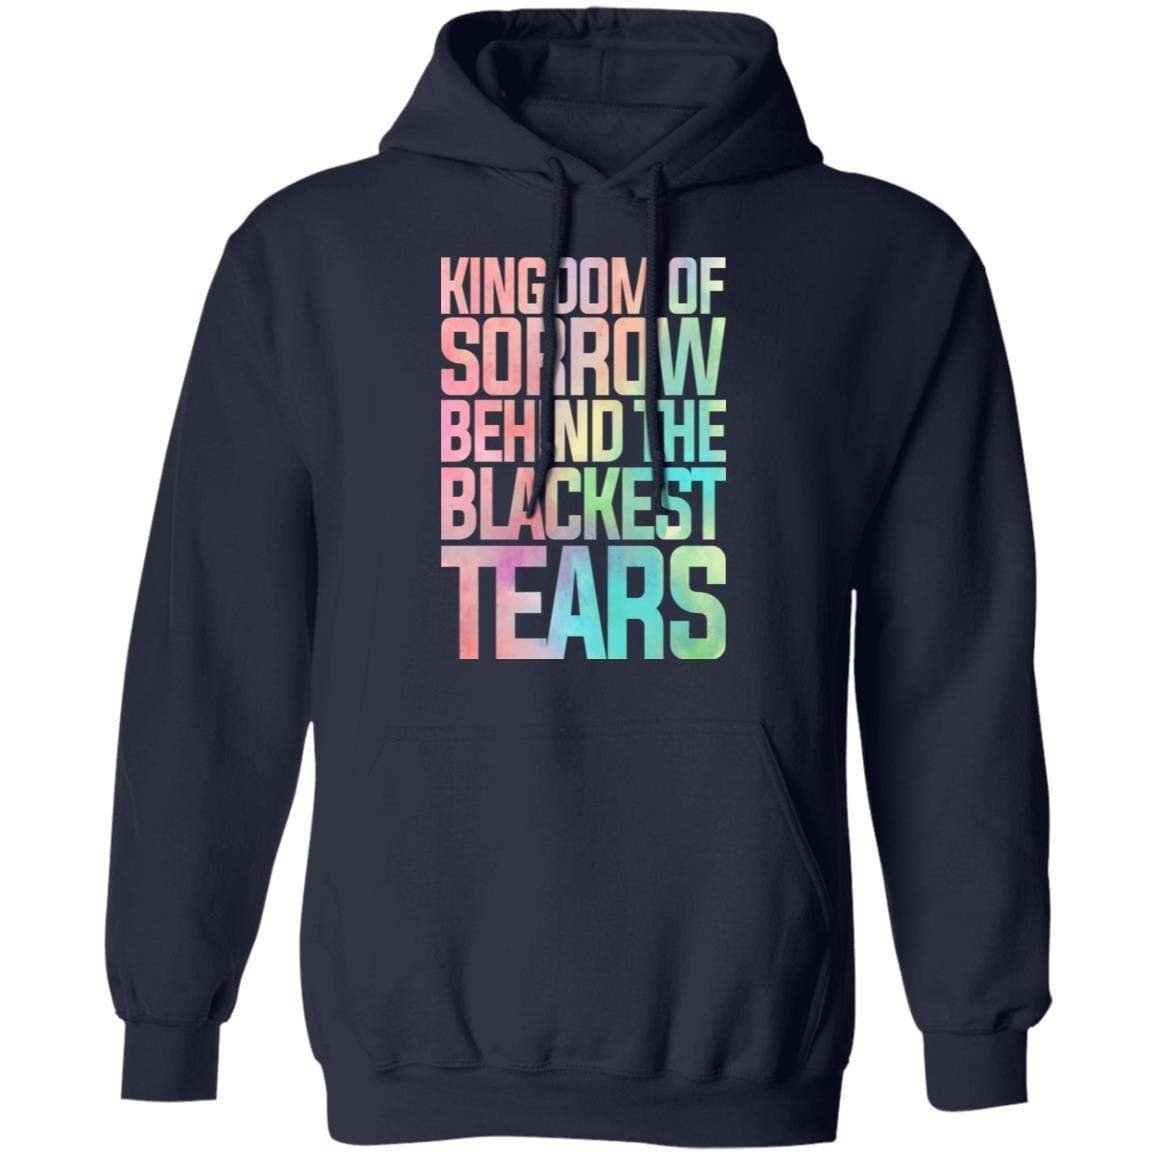 Kingdom Of Sorrow Behind The Blackest Tears T-Shirts, Hoodies 541-4742-87589178-23135 - Tee Ript